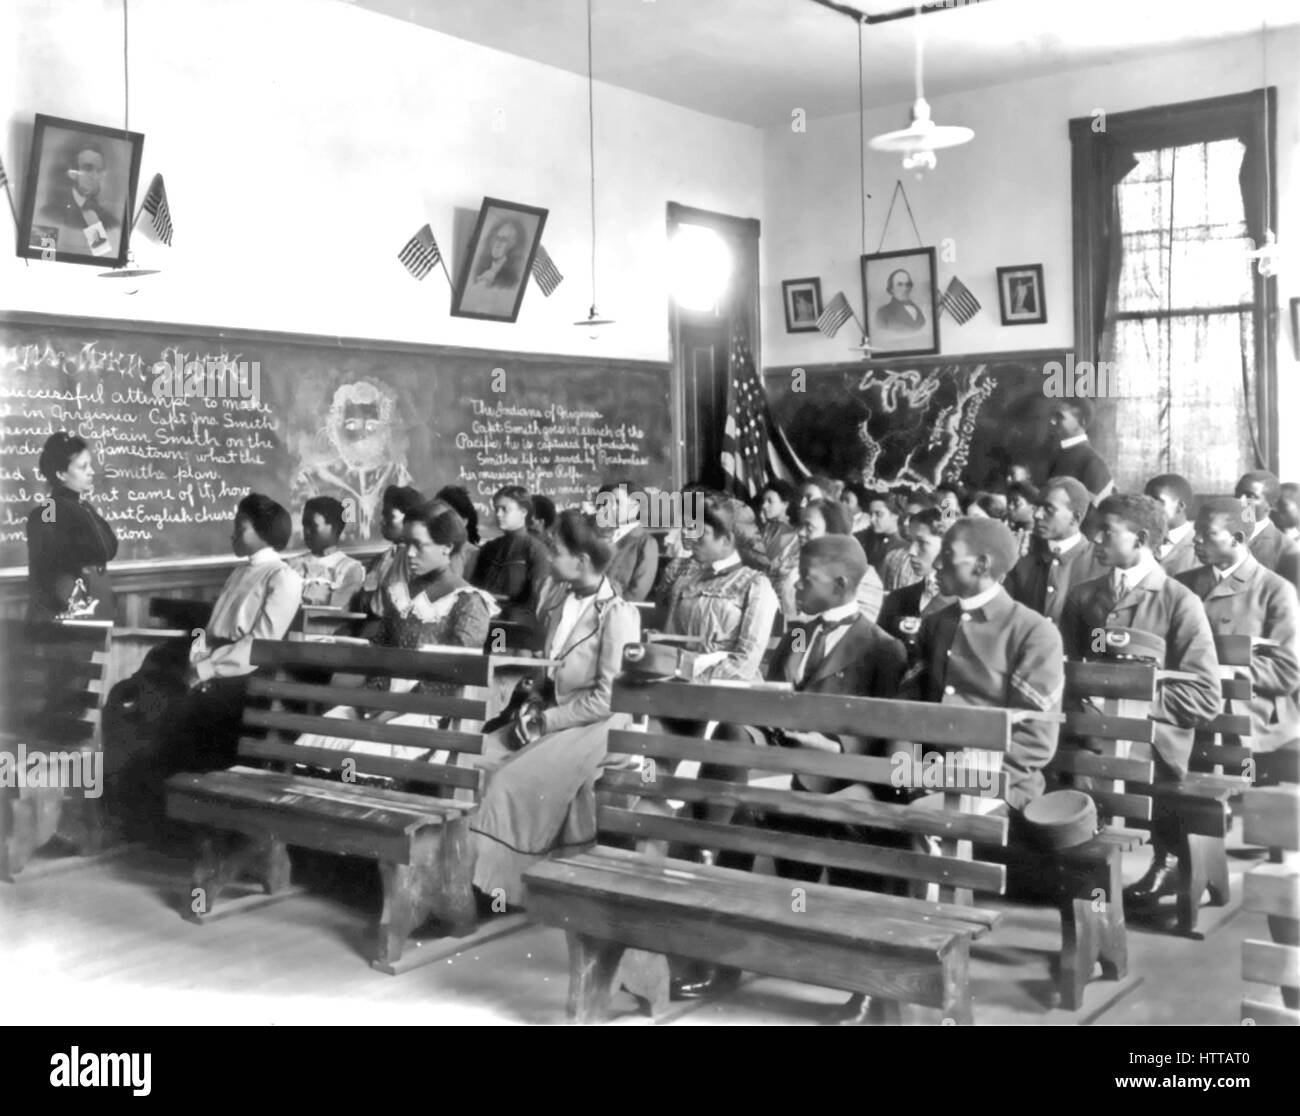 Tuskegee University Stock Photos   Tuskegee University Stock Images     TUSKEGEE NORMAL SCHOOL Alabama  A history lesson in progress about 1900    Stock Image